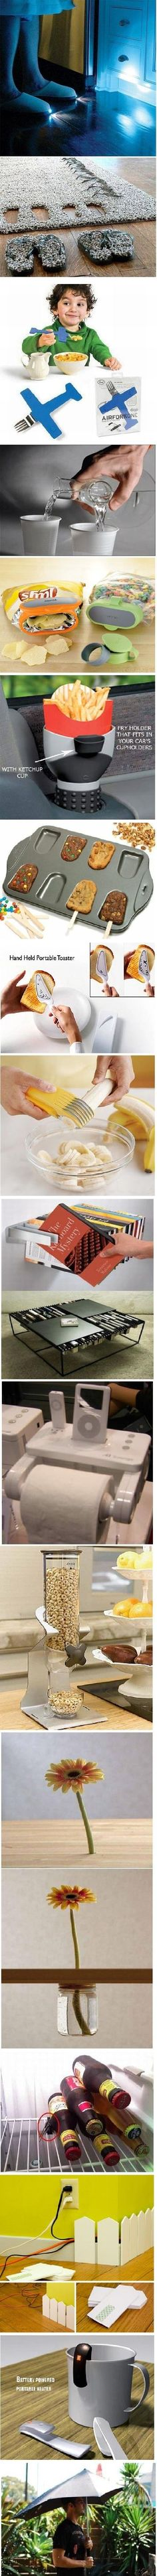 Supercool inventions!